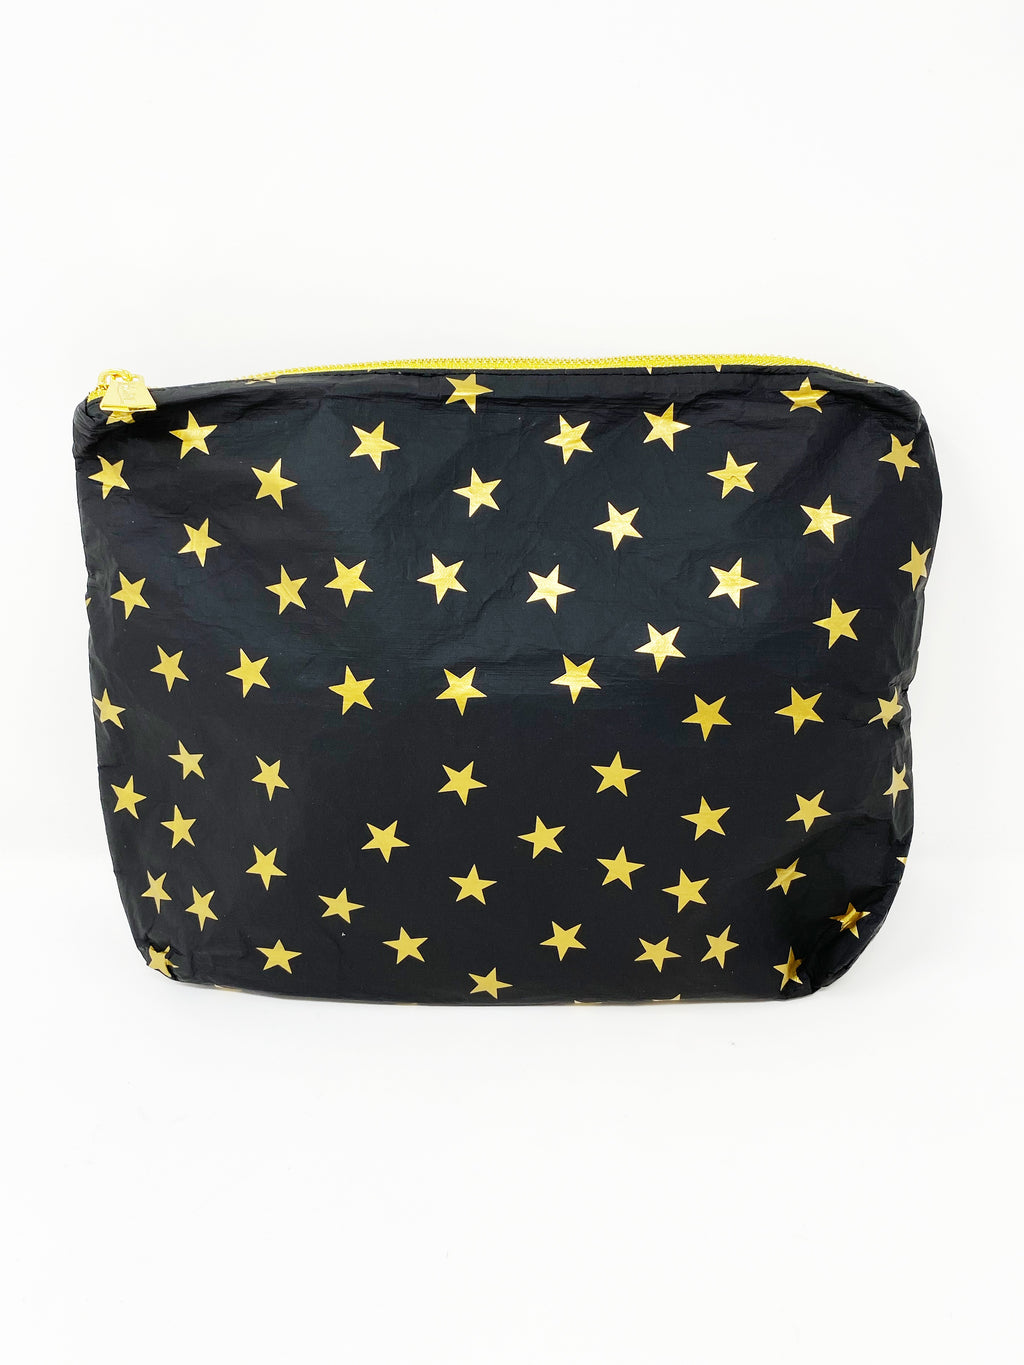 Hi Love Travel Medium Pouch in Black with Gold Myriad Stars